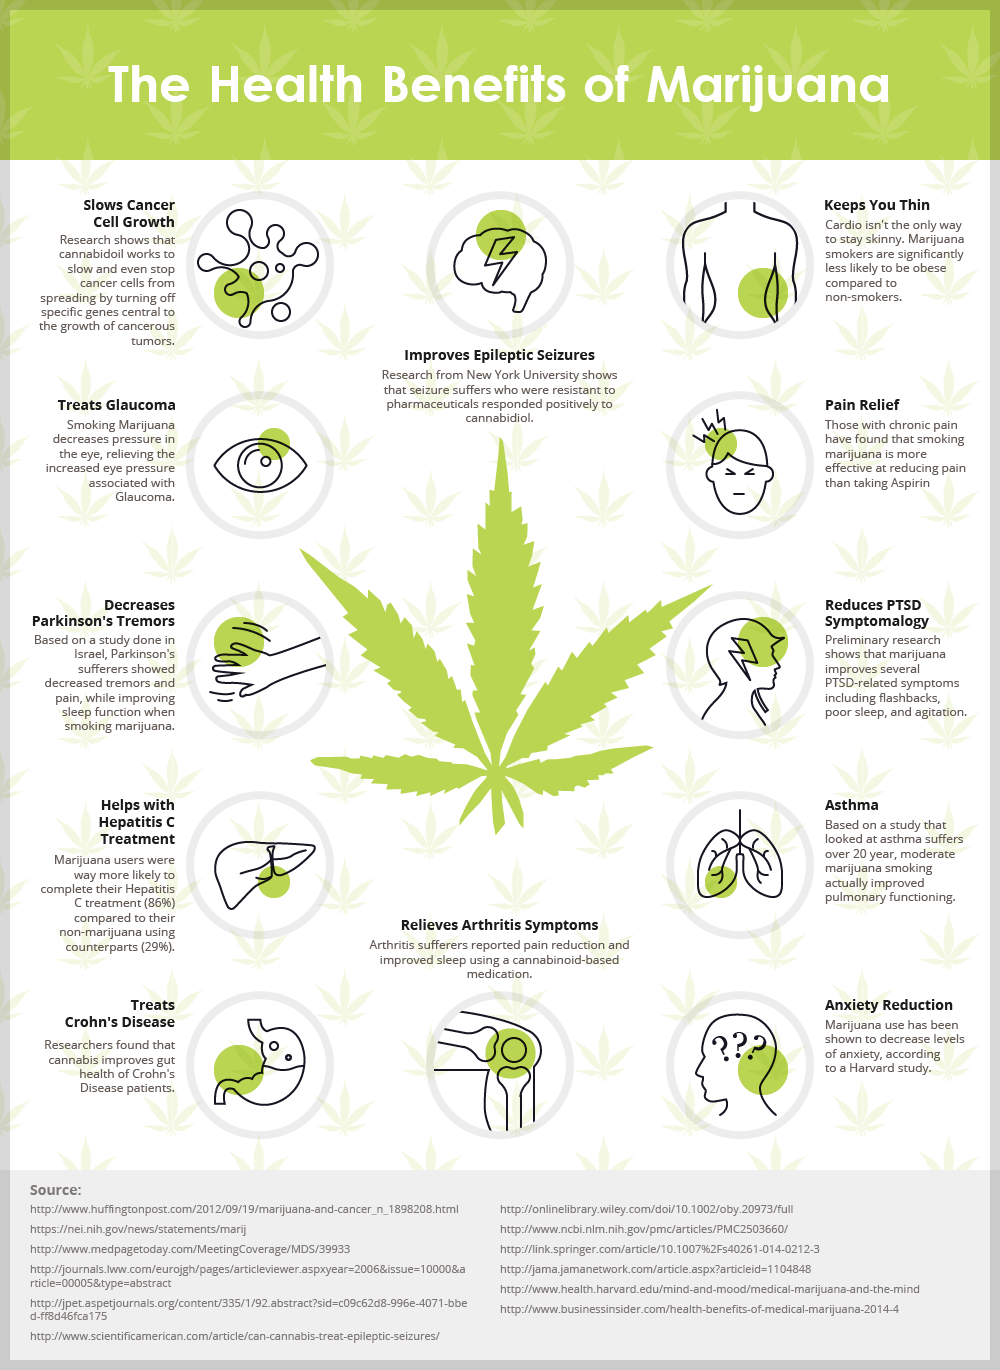 marijuana-health-benefits-infographic